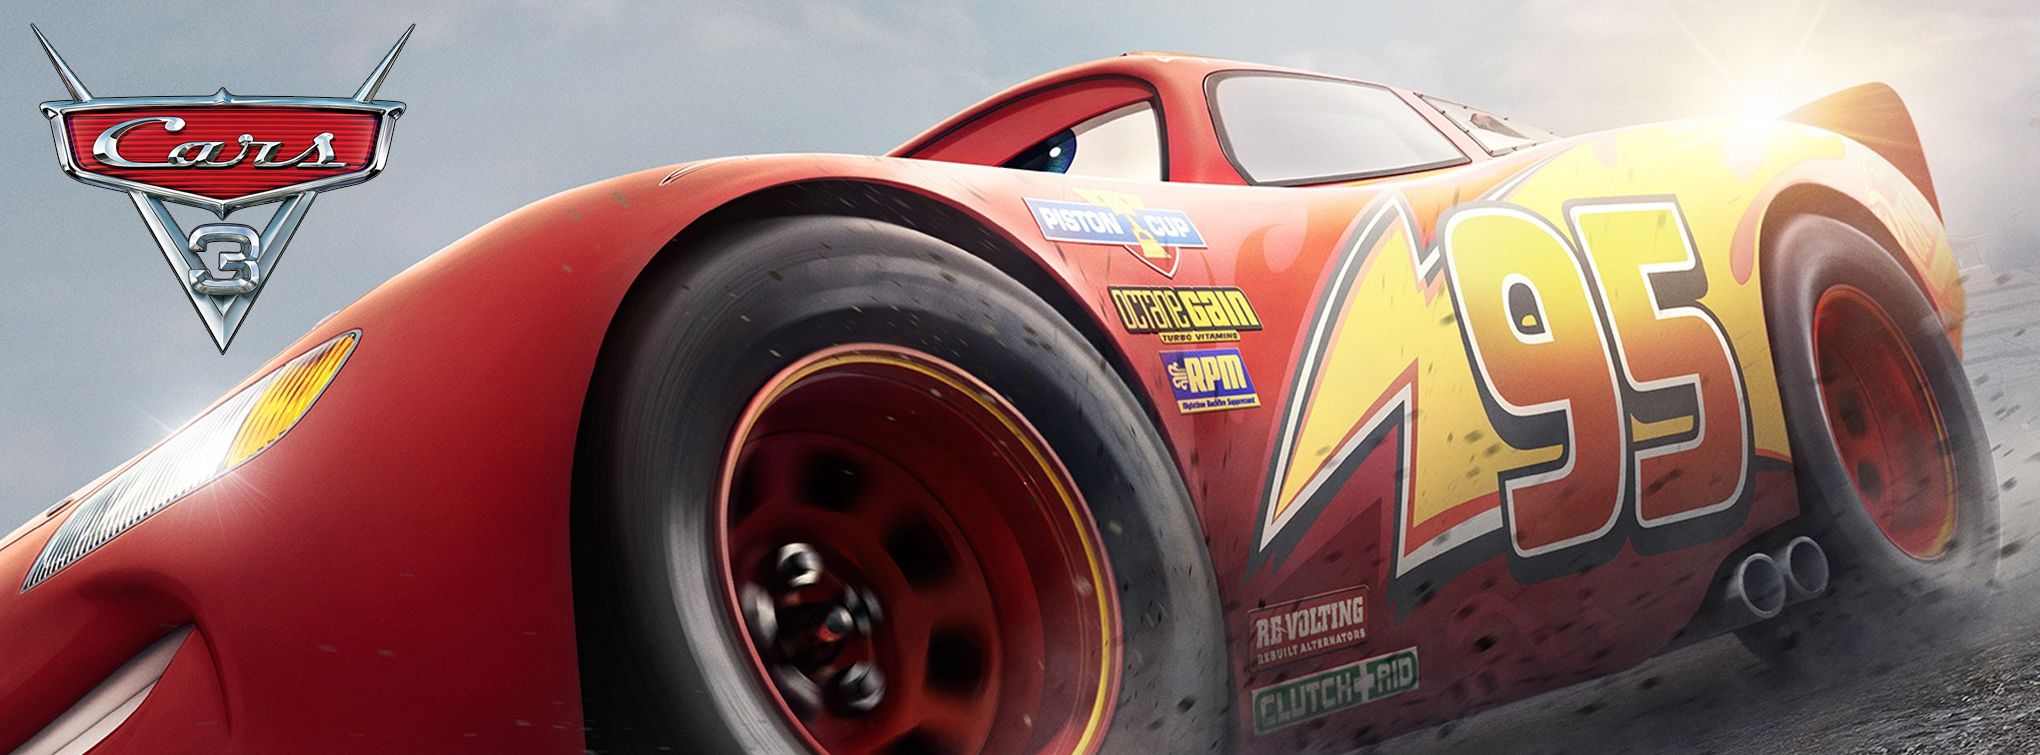 Cars 3 - now playing everywhere!